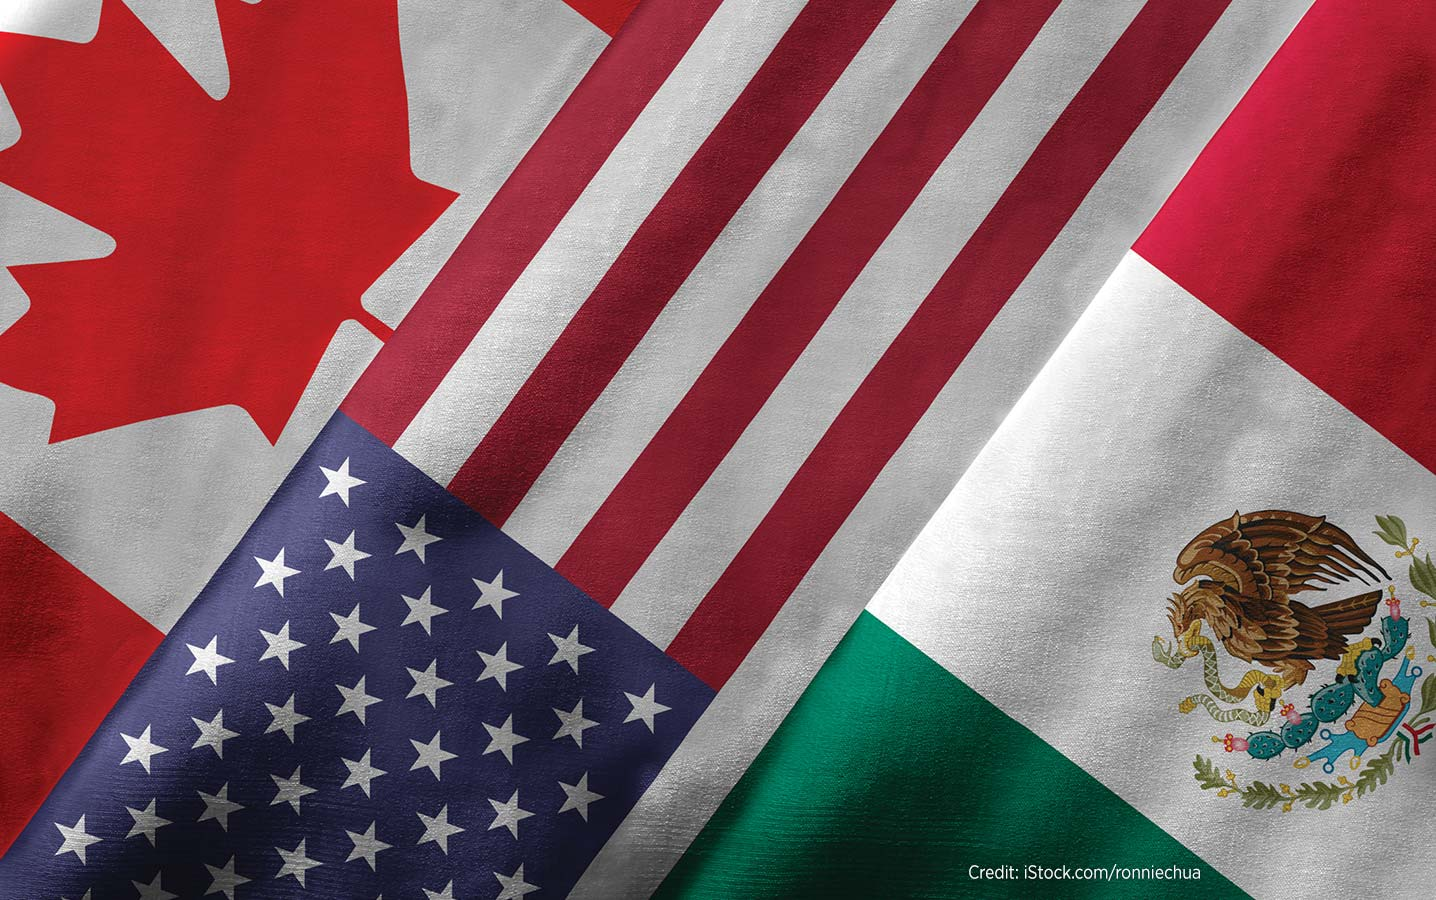 Flags of Canada, U.S.A and Mexico